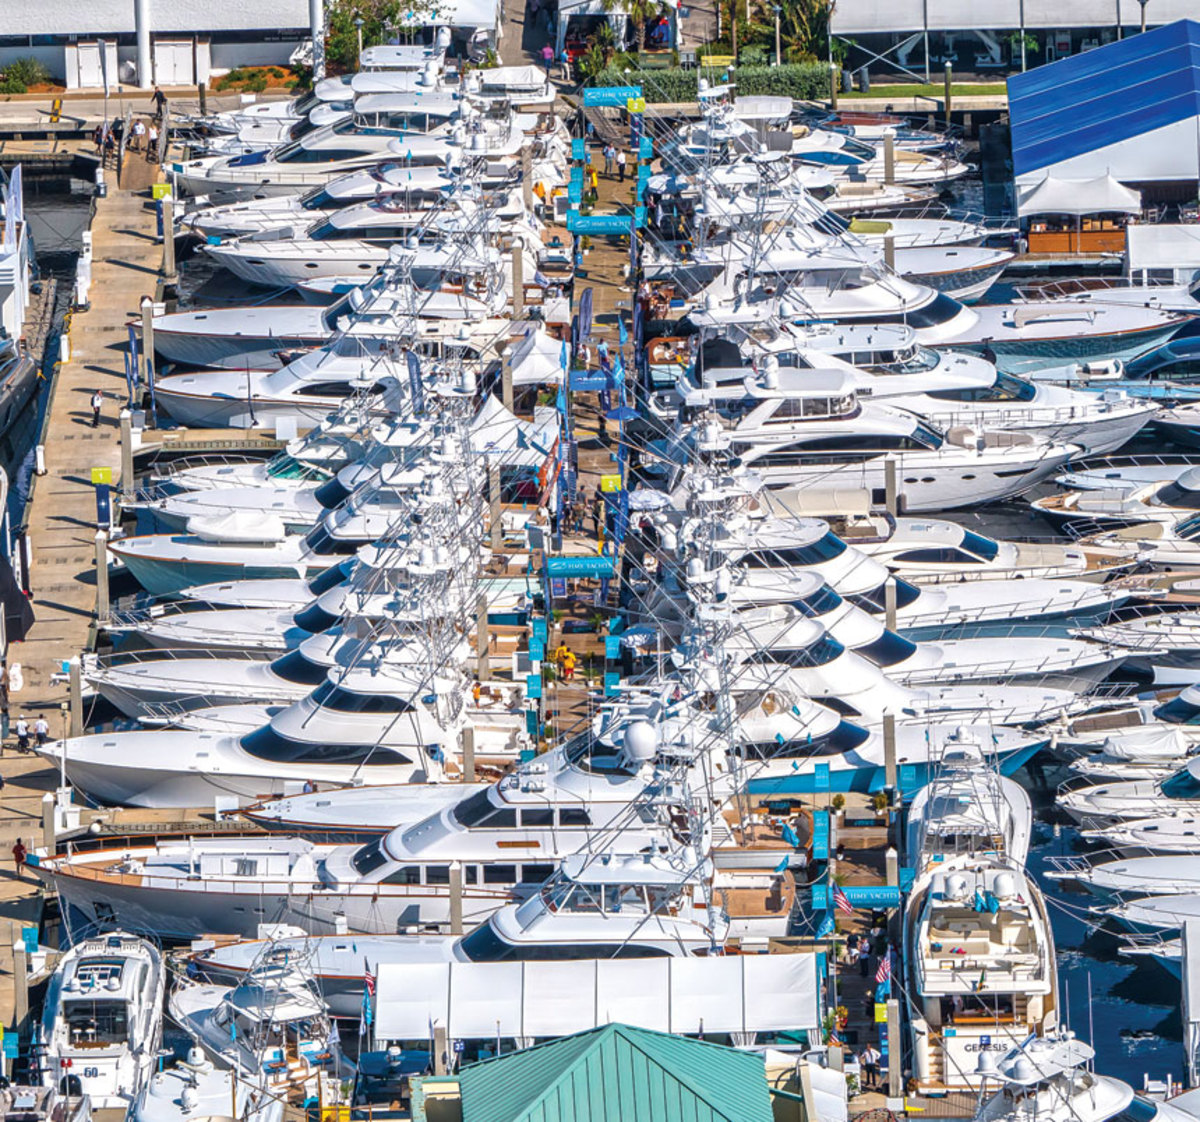 Brokerage HMY Yachts sold multiple new and used boats during the show.